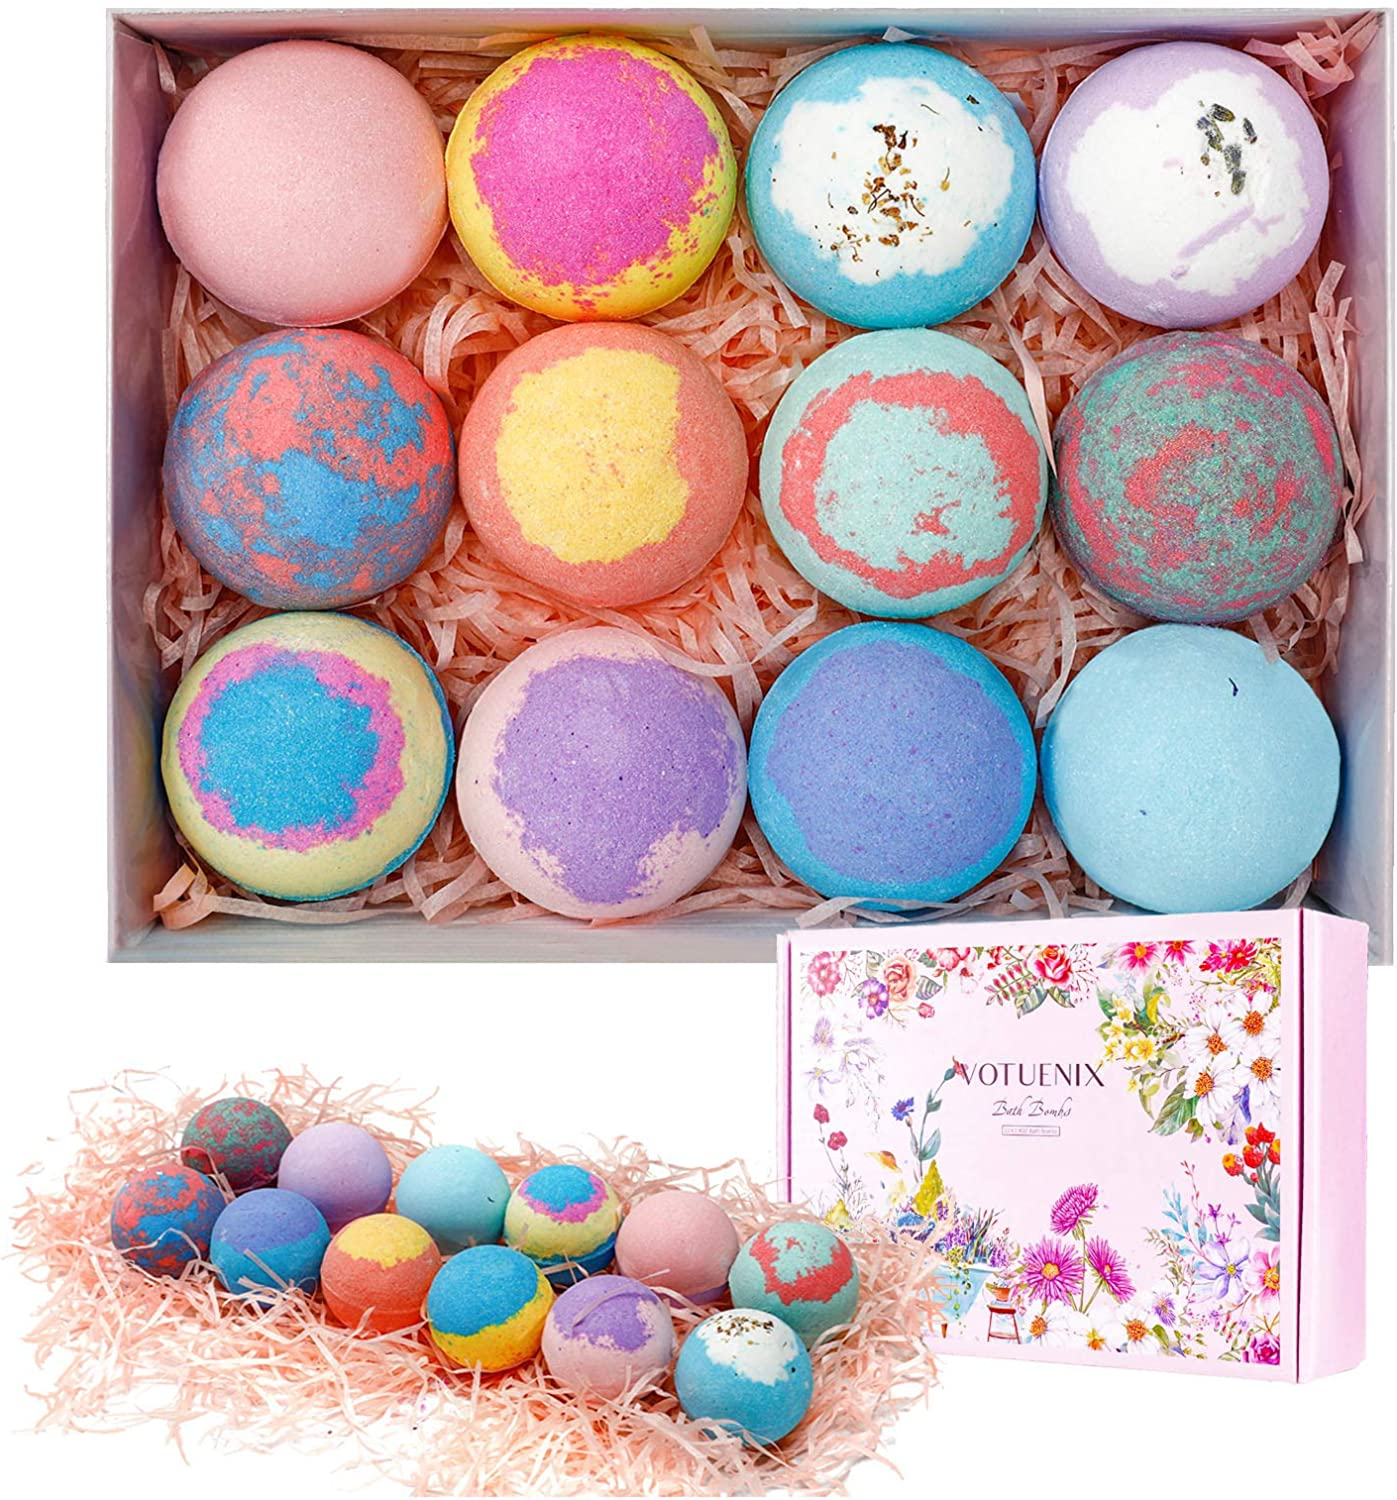 VOTUENIX Bath Bombs Bath 12 Pcs Bombs Gift Set with Plant Essential Oil and Sea Salt Handmade Bath Bomb for Dry Skin, Perfect Gift for Kids, Women, Mom, Girls, Friends for Mother's Day